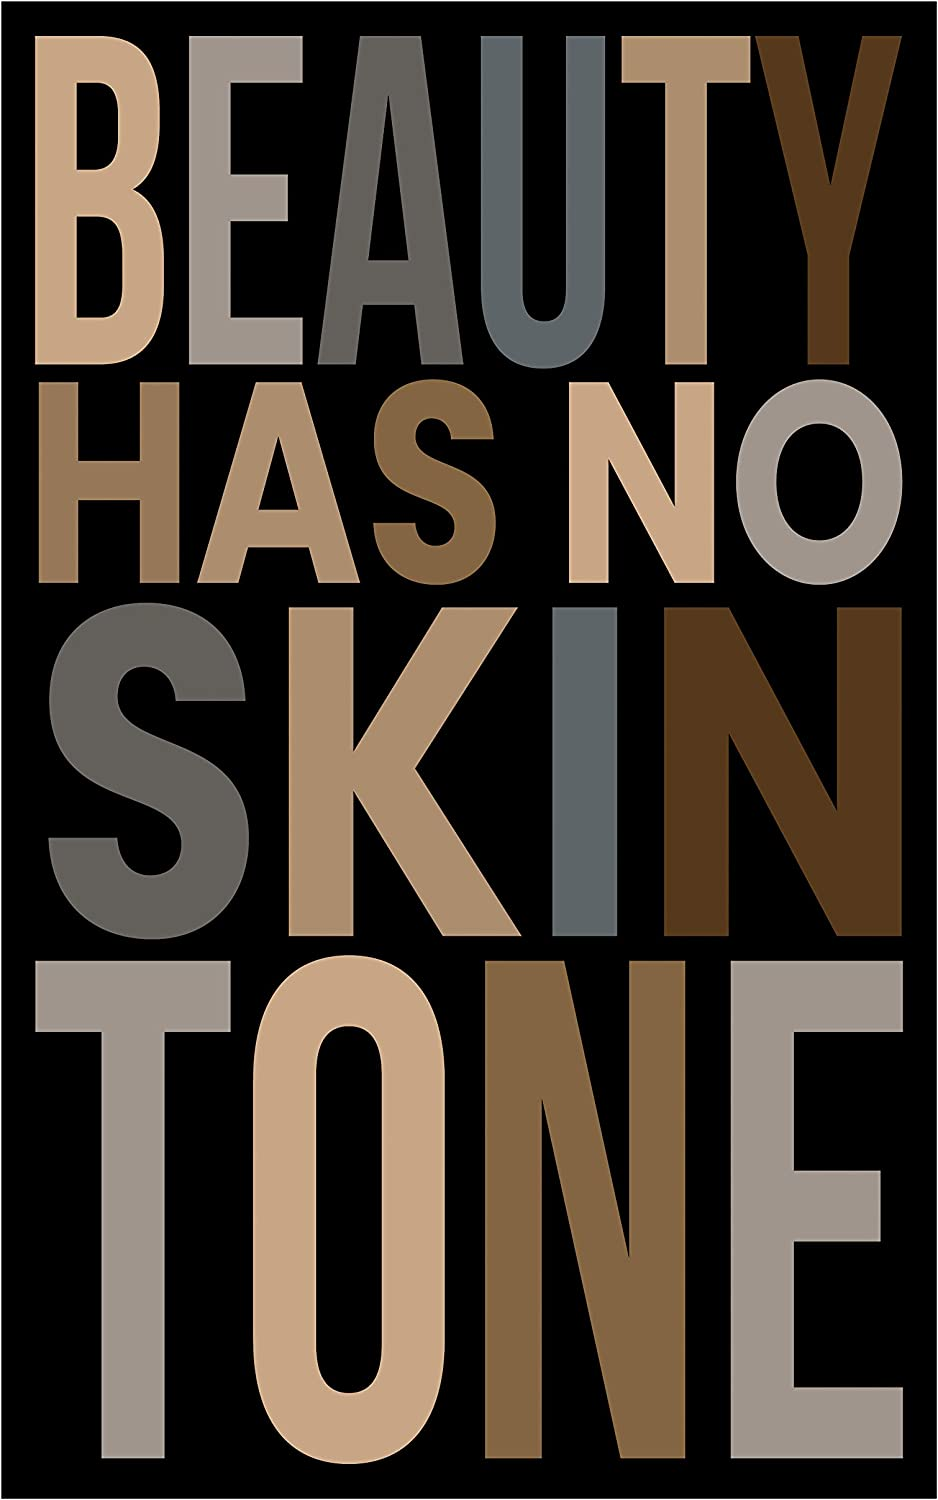 Beauty Has No Skin Tone Poster, 11x17 Inches, Wall Art Print, Girls Women, Love, Equality